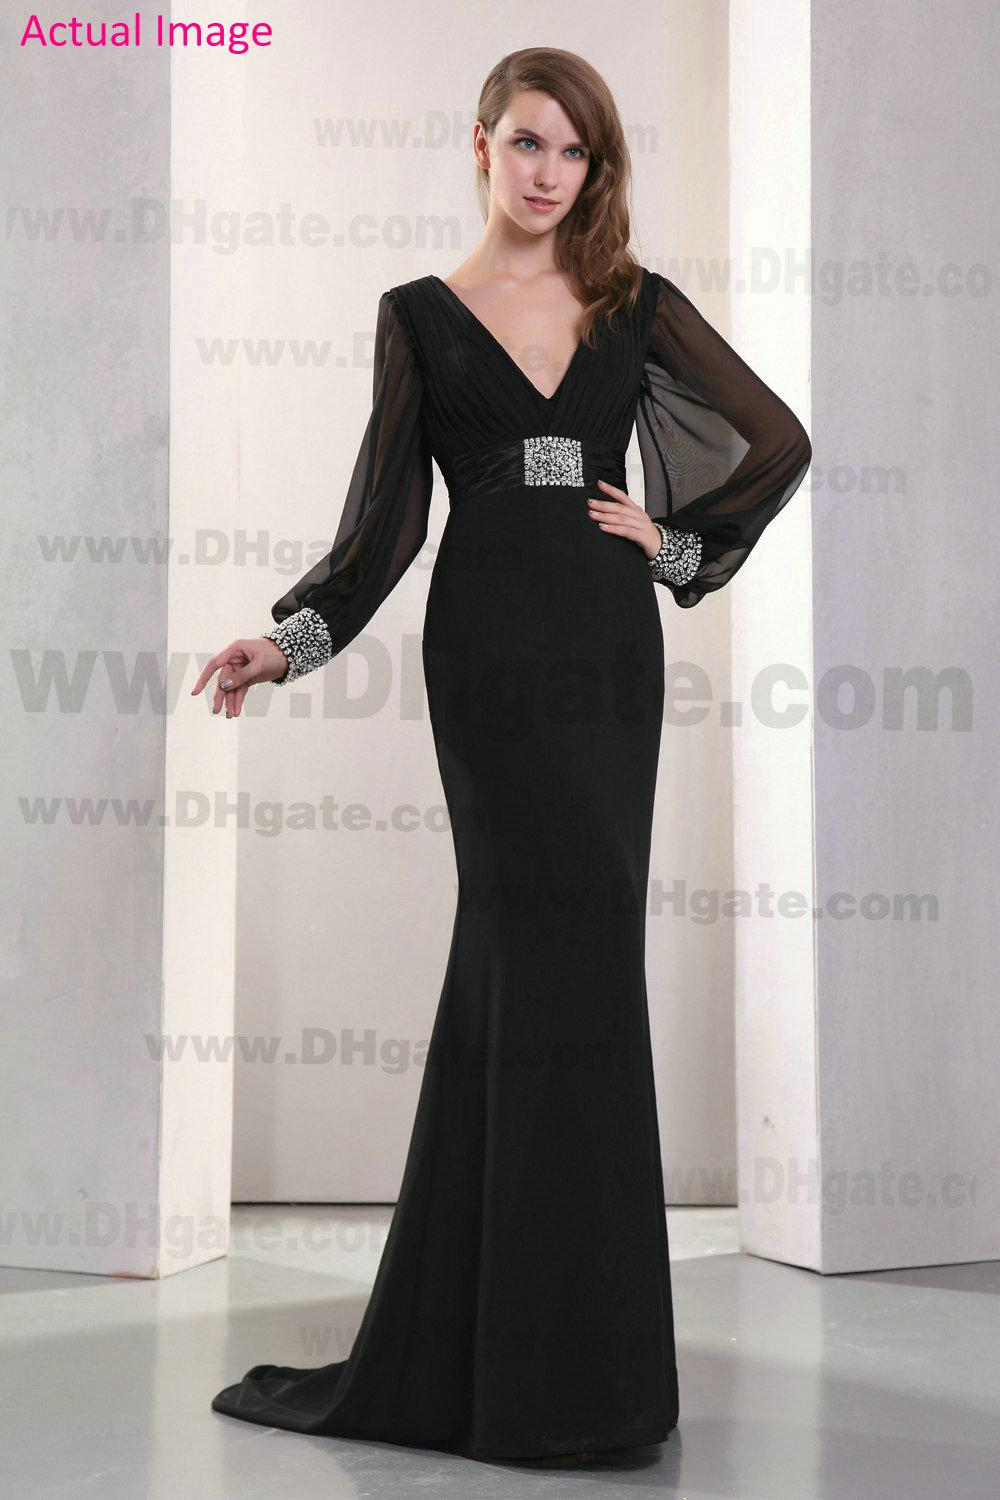 Collection Elegant Dinner Dresses Pictures - Reikian